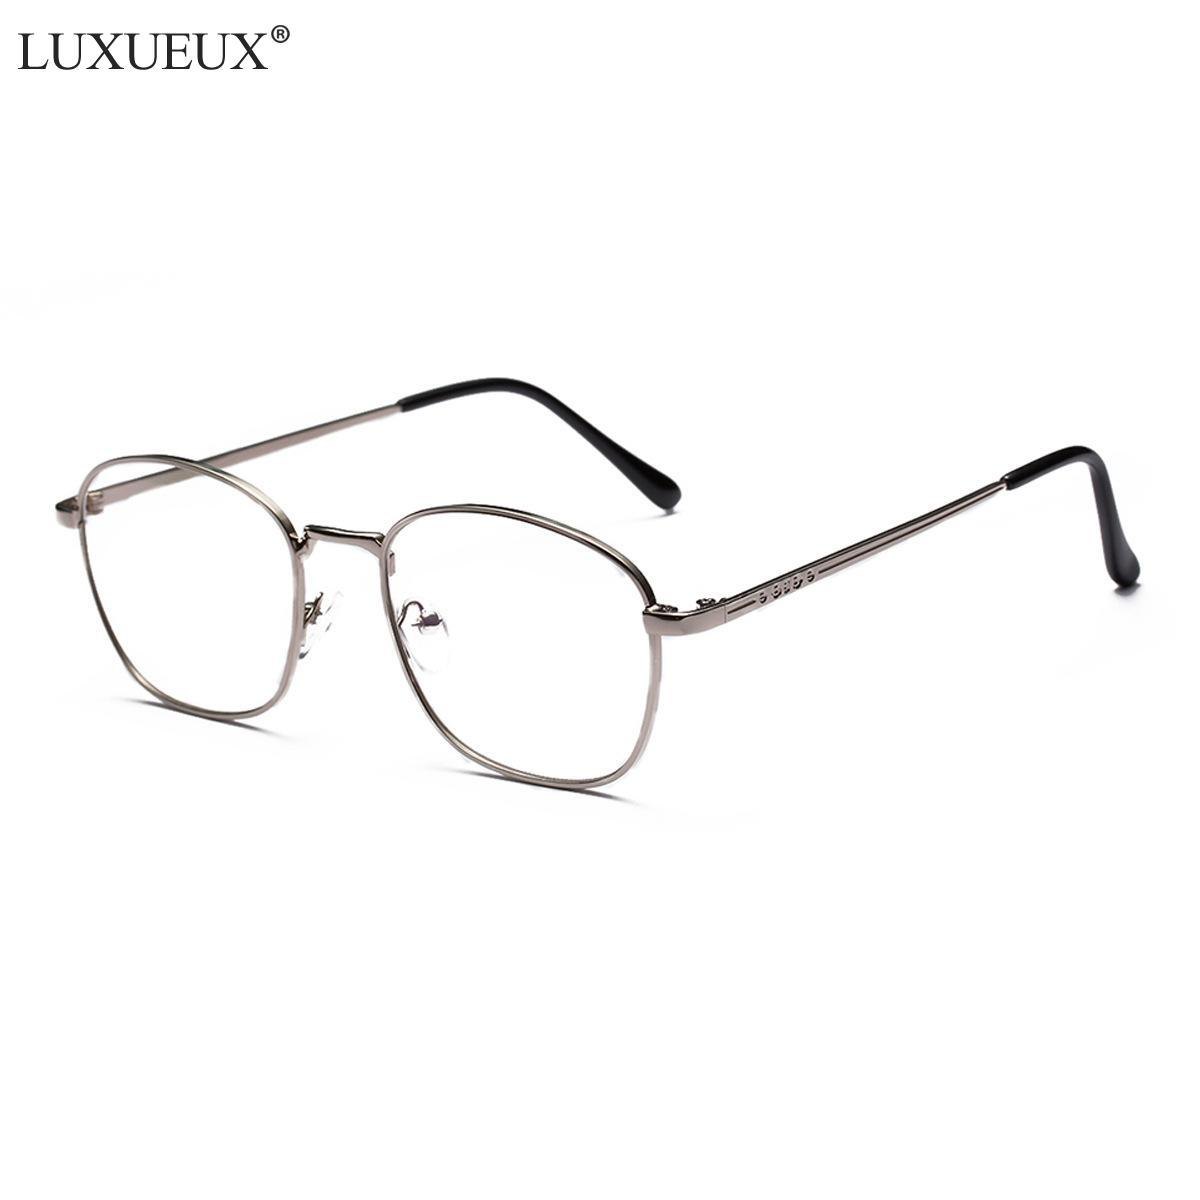 f9d661104a 2019 Fashion Metal Flat Clear Lens Eyewear Student Computer New Small Box  Myopia Eye Glasses Frames For Men Women Vintage Glasses From Vintage66